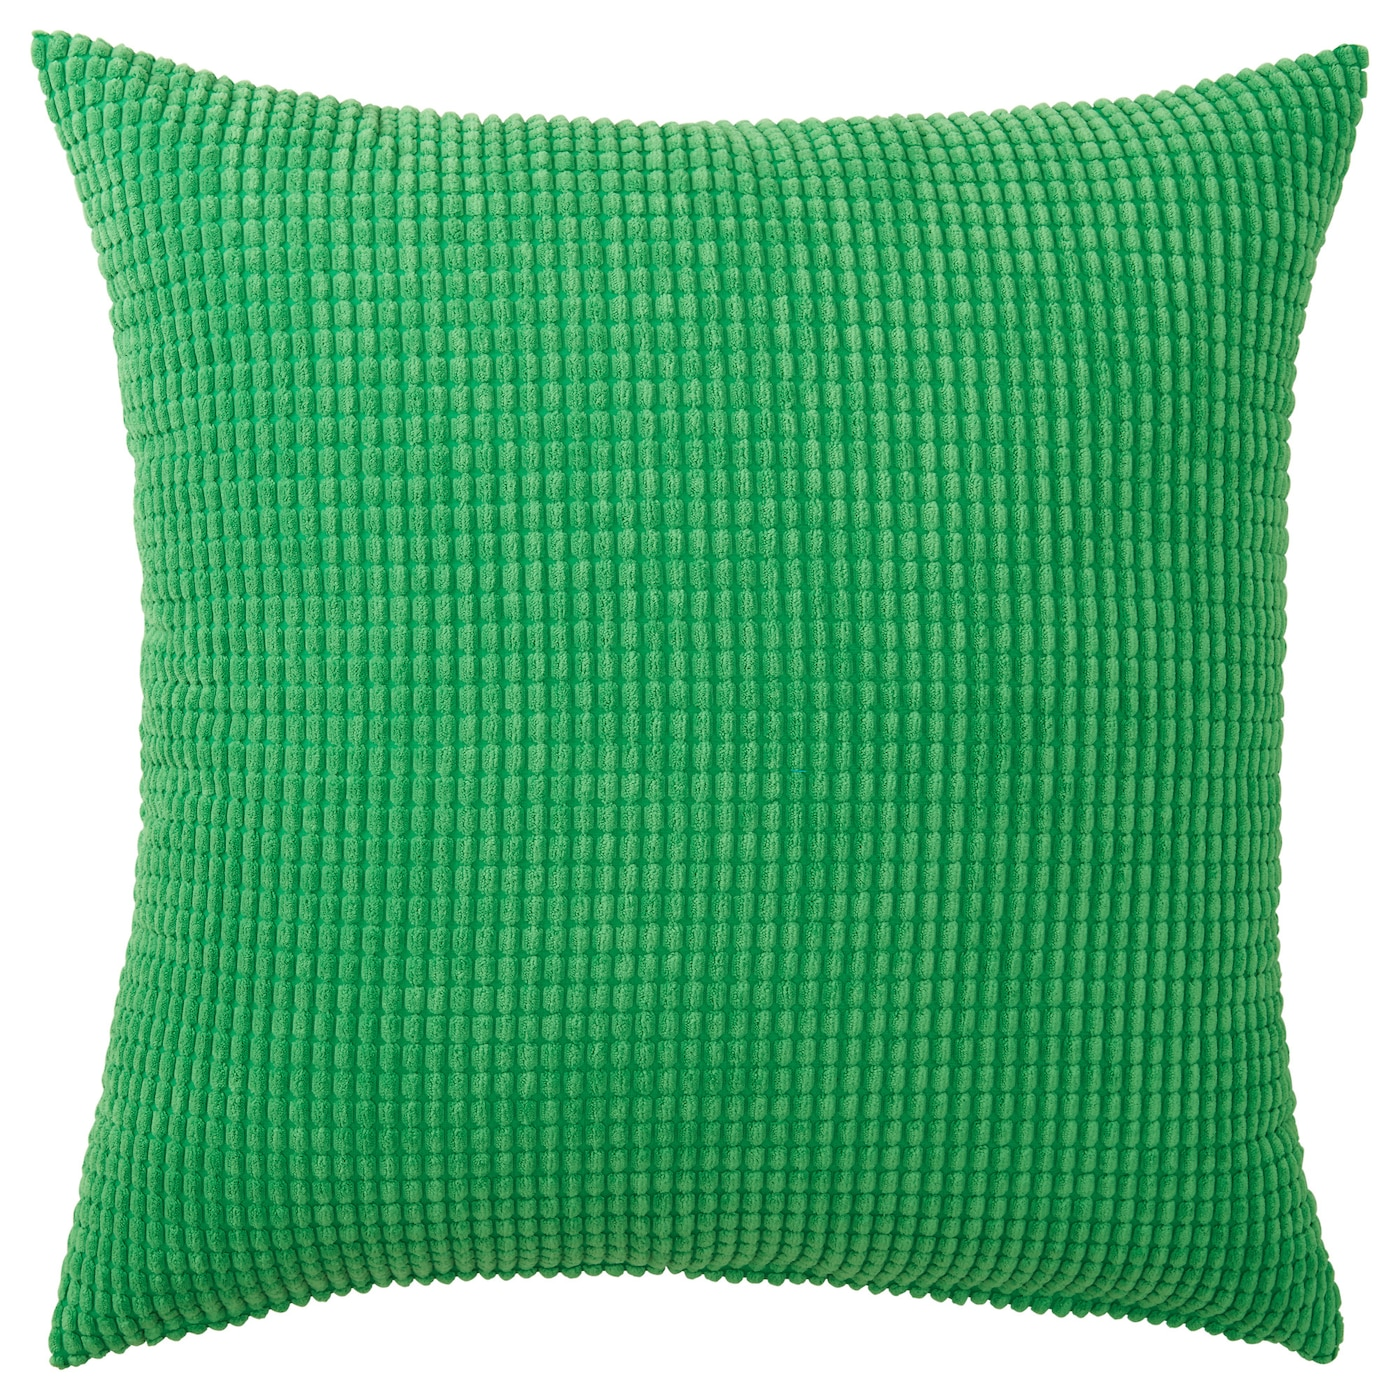 gullklocka cushion cover green 50x50 cm ikea. Black Bedroom Furniture Sets. Home Design Ideas